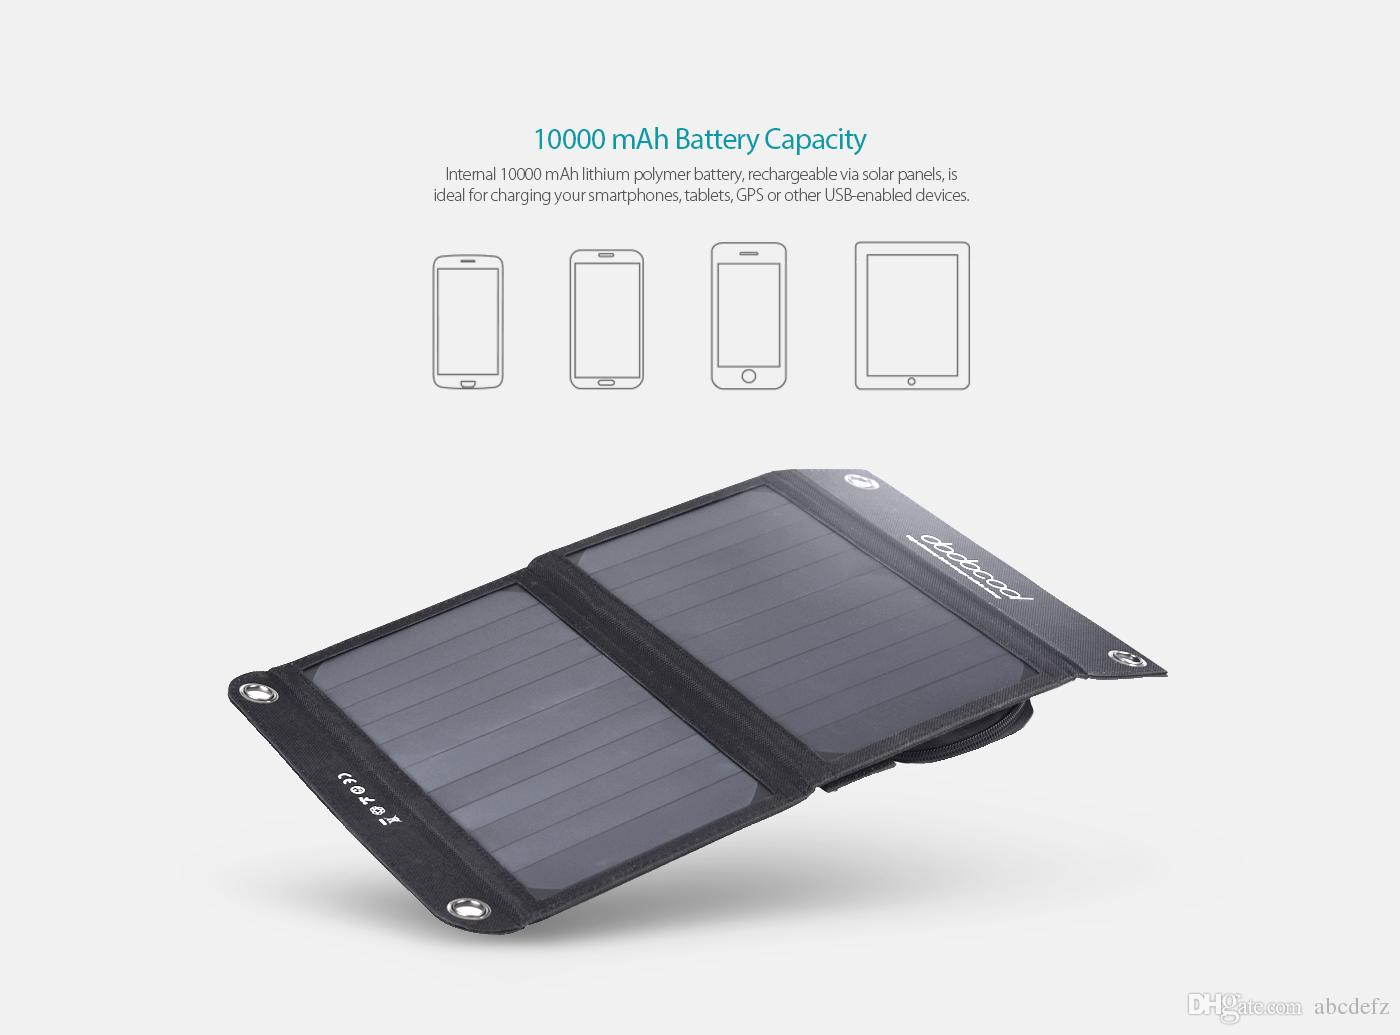 Discount Portable Foldable 12w 10000mah Dual Usb Solar Charger Power Battery Via The Mini Port On Charging Circuit Or Bank External Pack For Smartphone Tablet 5v Charged Device Black From China